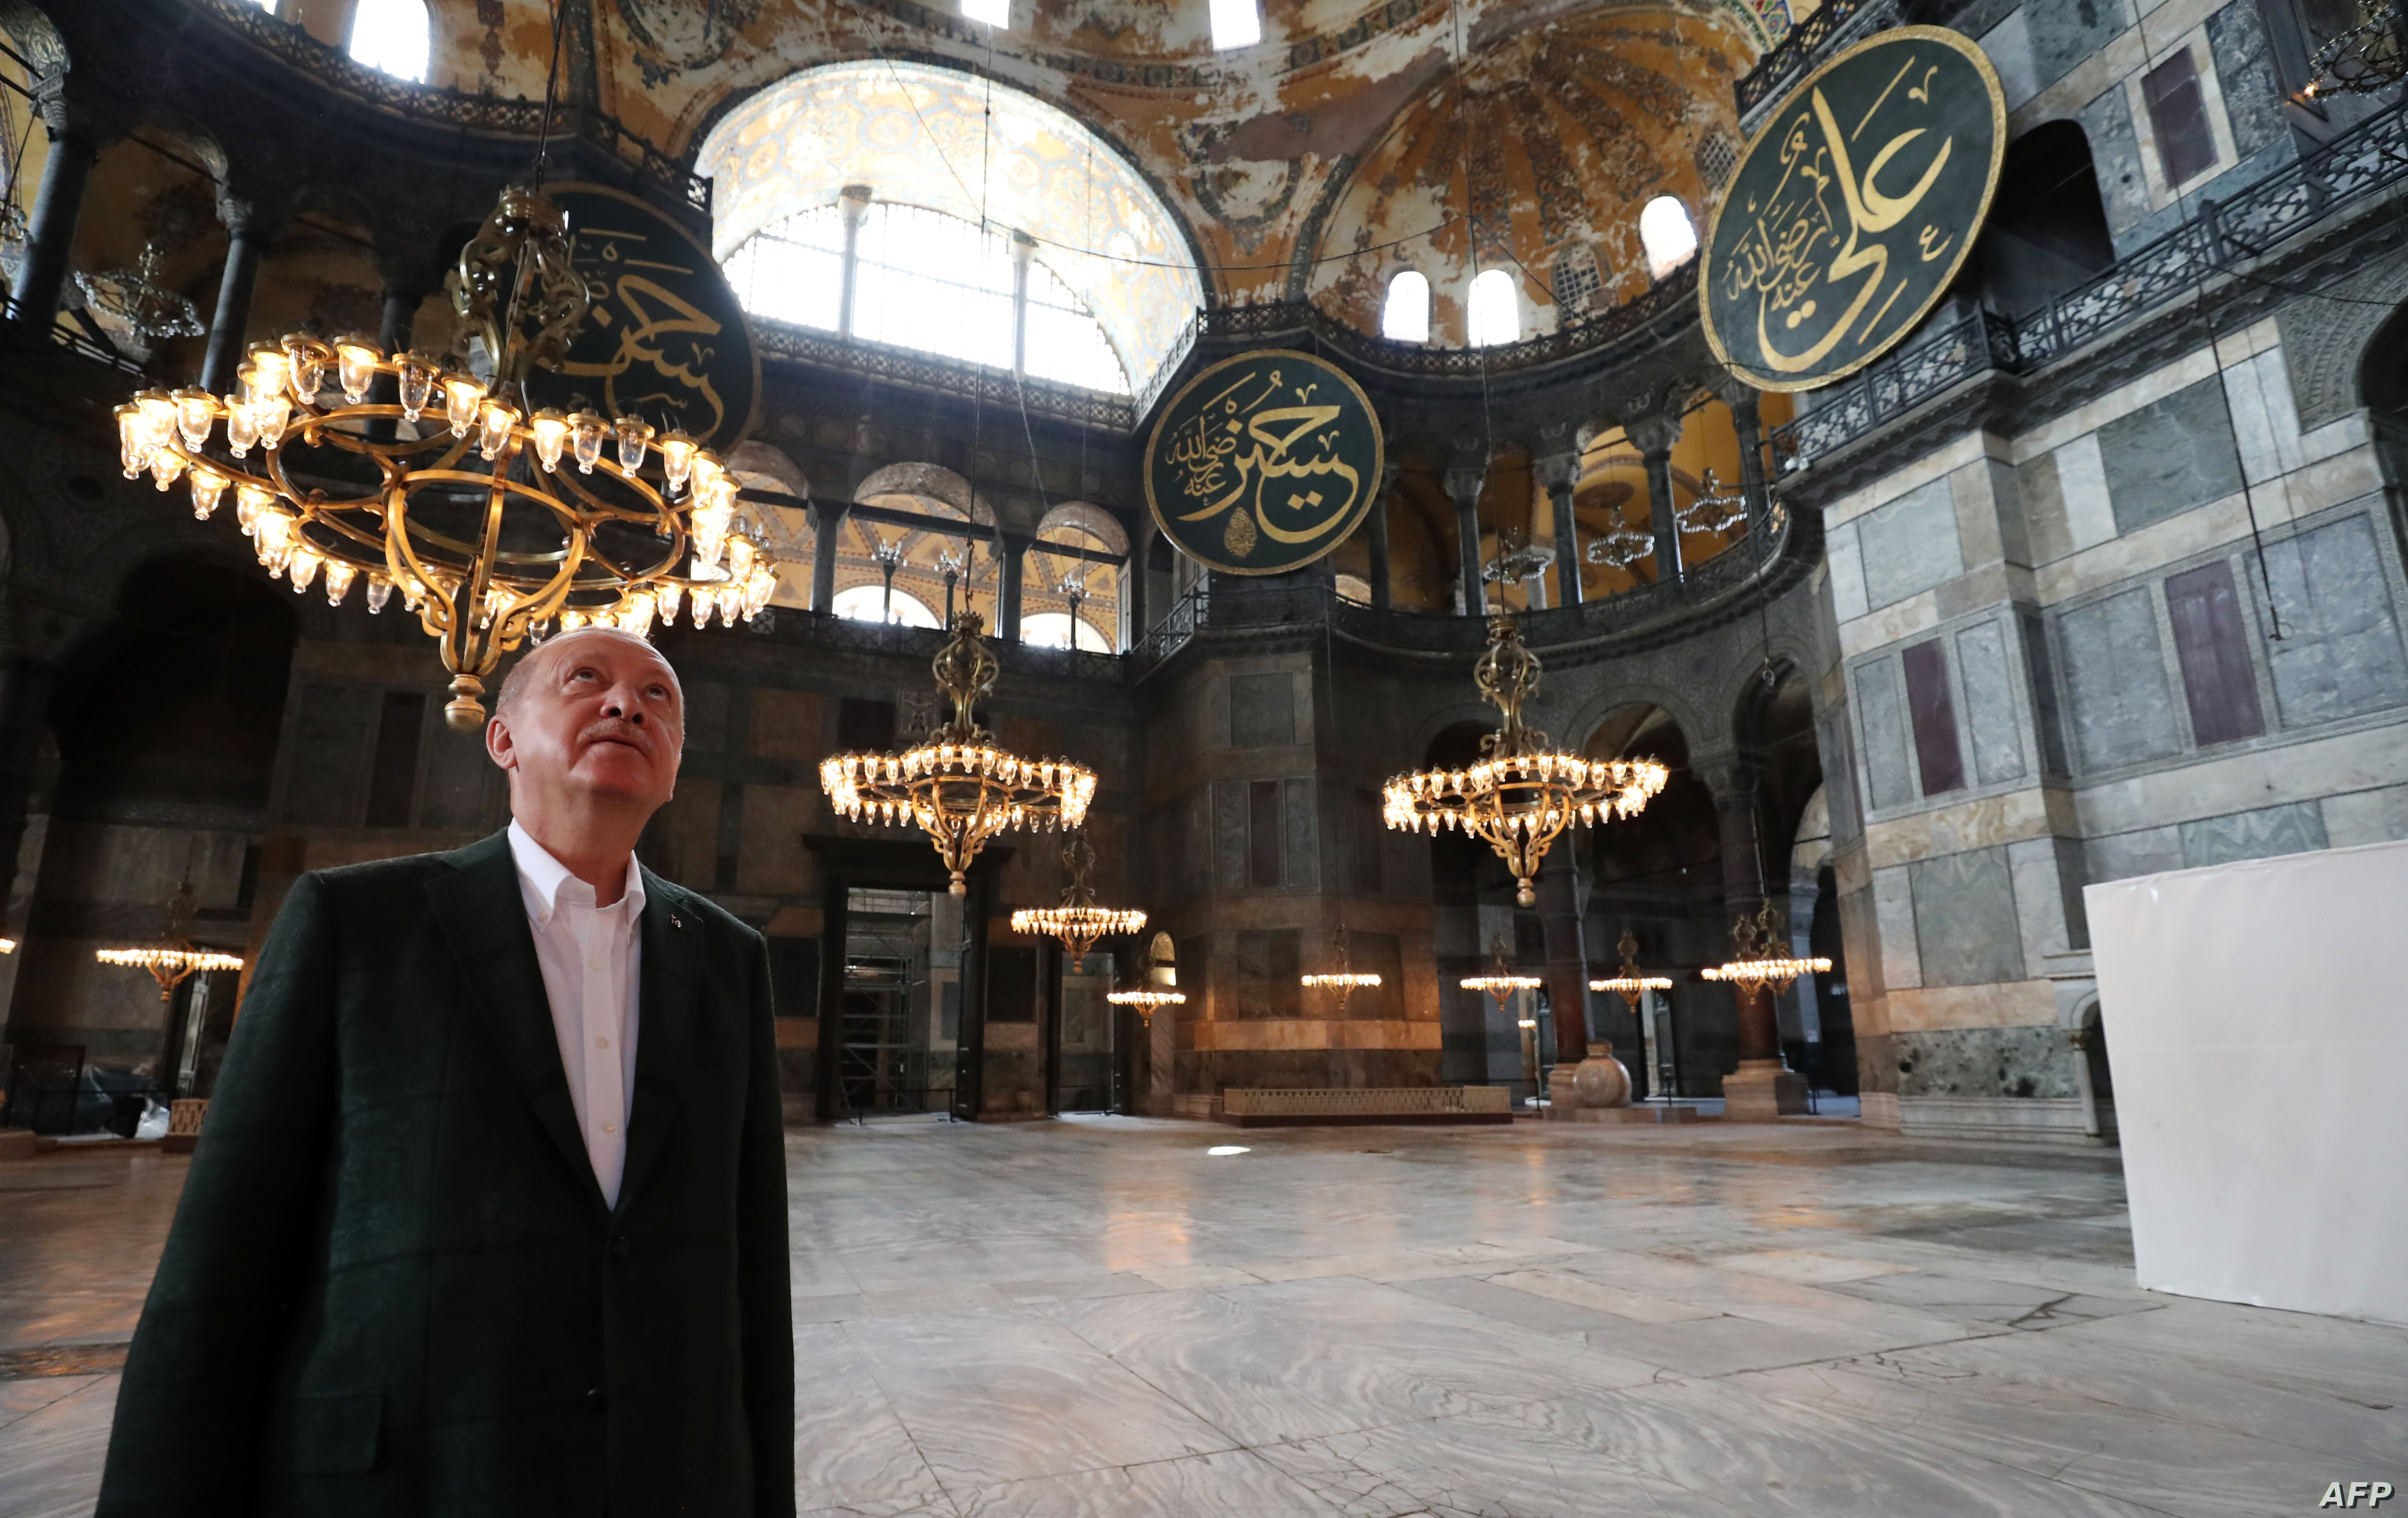 Istanbul's Hagia Sophia opens as a mosque for Muslim prayers